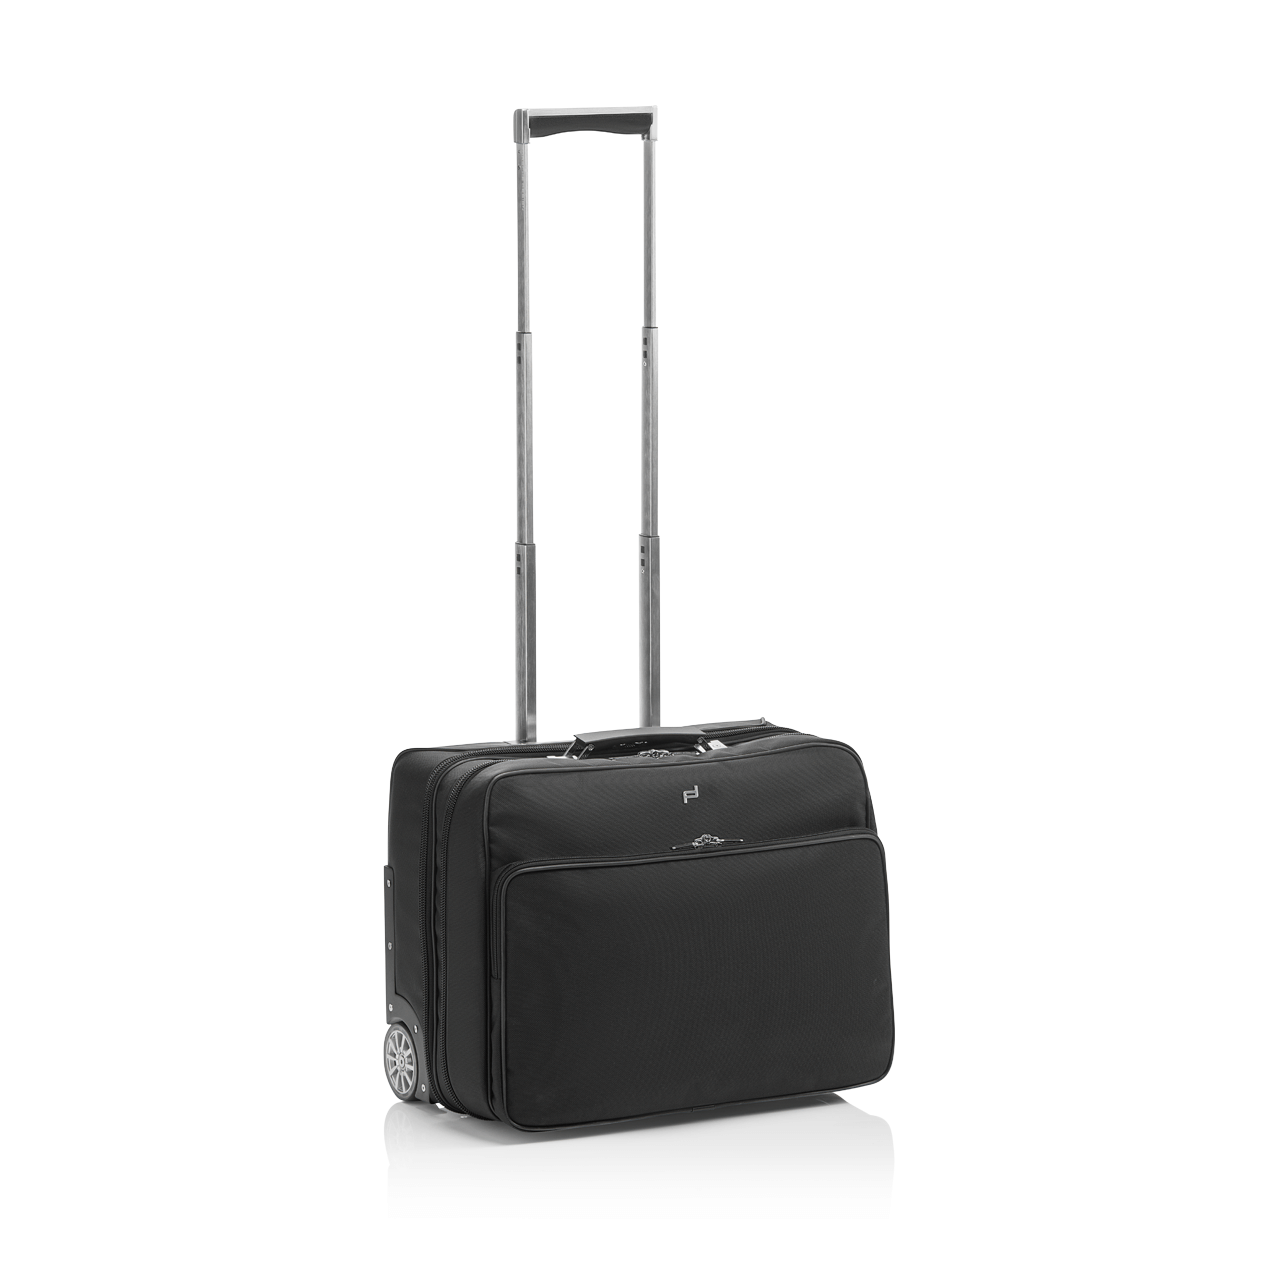 ROADSTER SOFTCASE SERIES TROLLEY BRIEFCASE M - фото 1